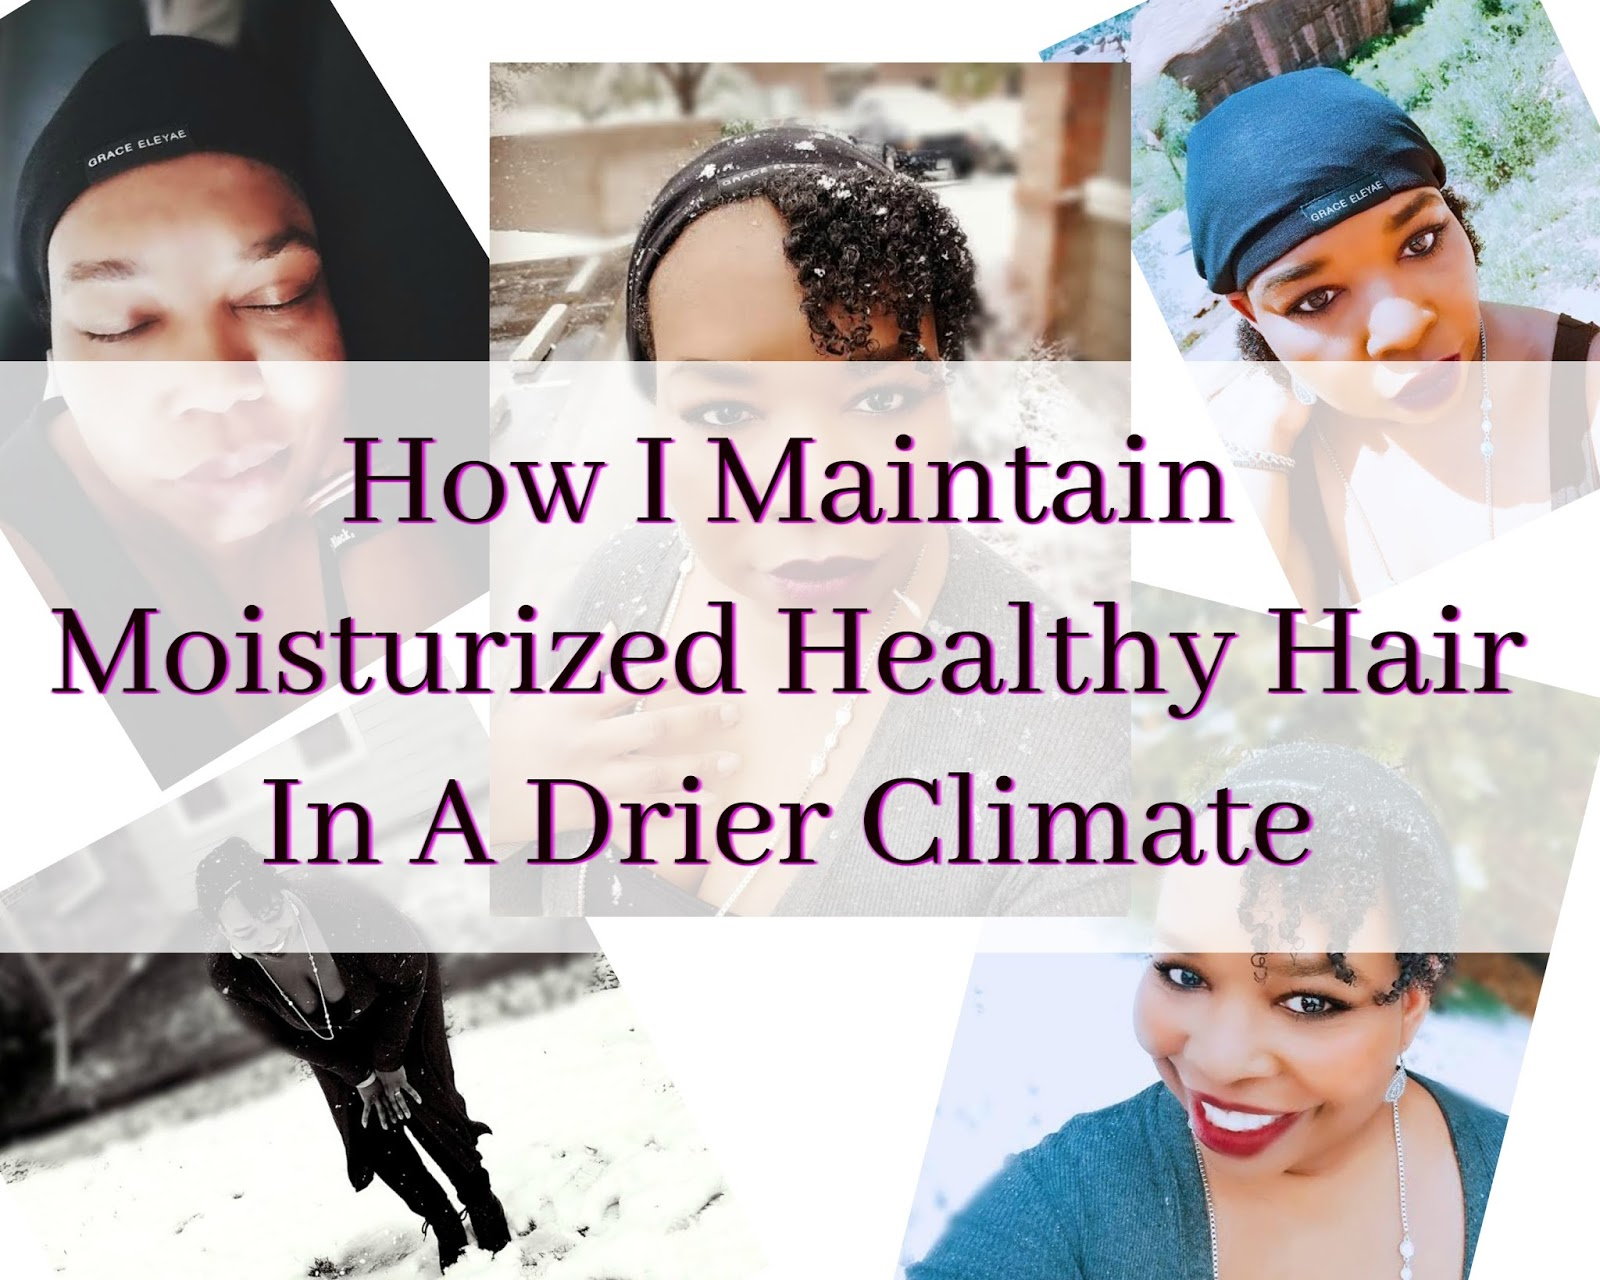 How I maintain Healthy Hair In Drier Climates & Why This Is Important. Keeping hair moisturized and strong takes specific tips.